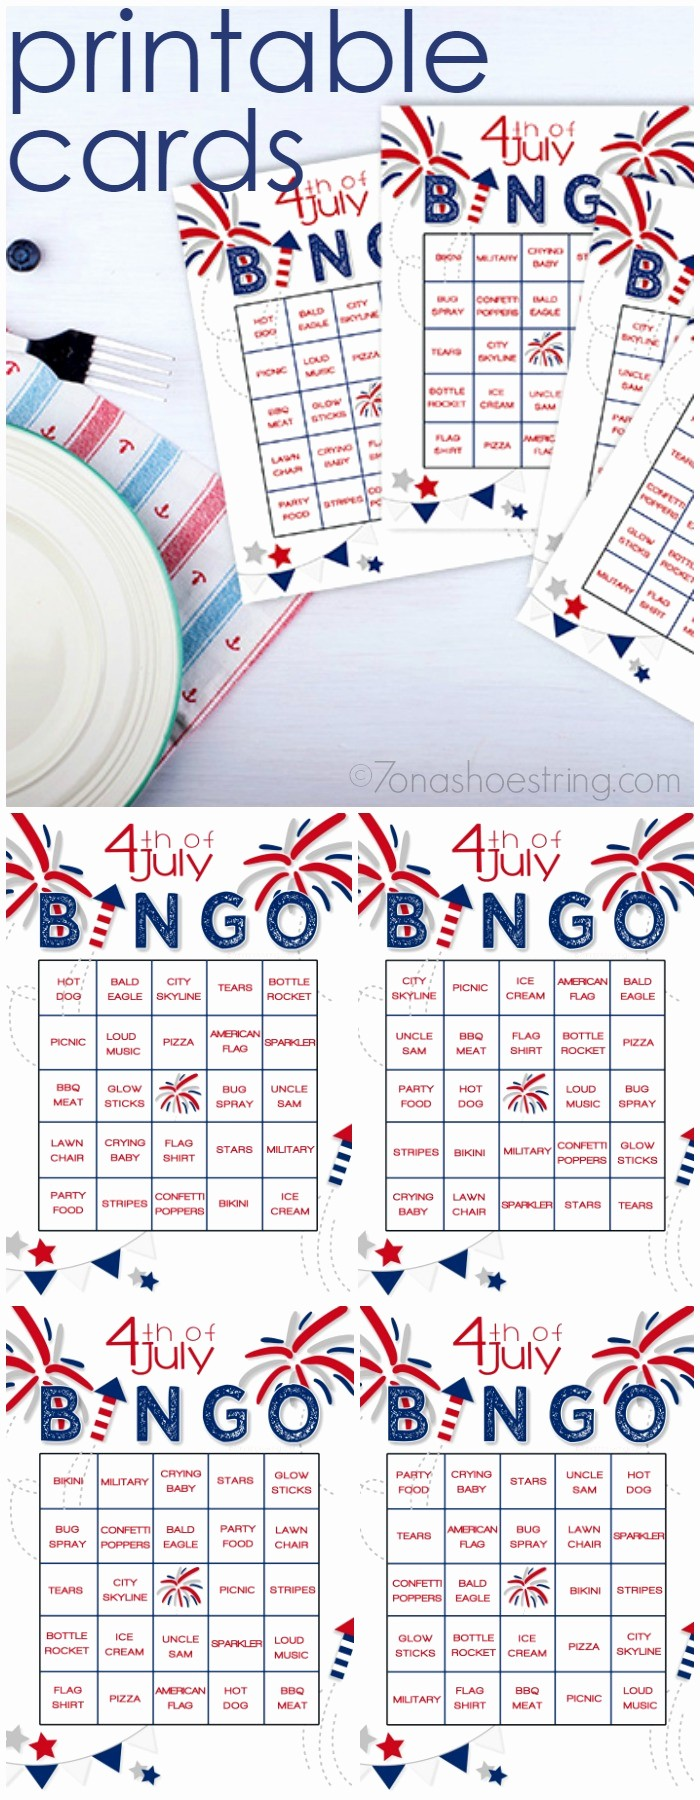 4th Of July Cards Printable Elegant Printable 4th Of July Bingo Adds Fun to Patriotic Celebrations